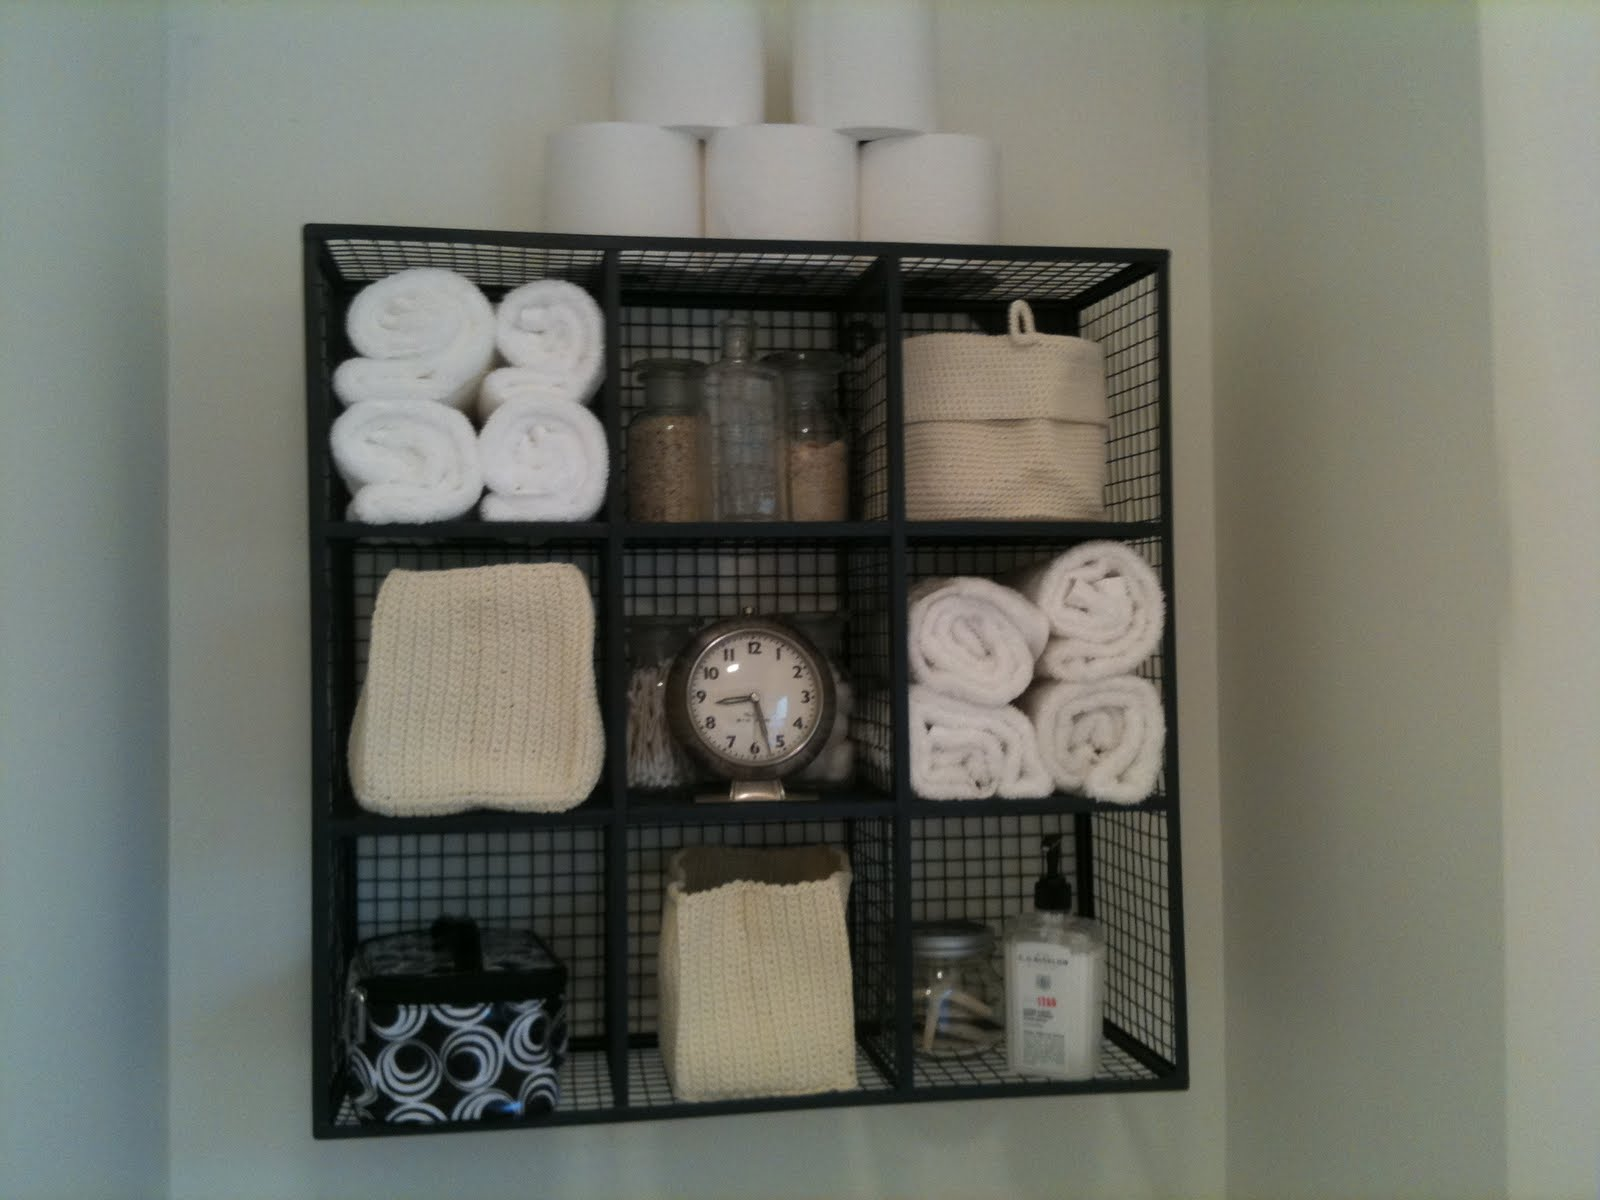 Fullsize Of Over The Toilet Storage